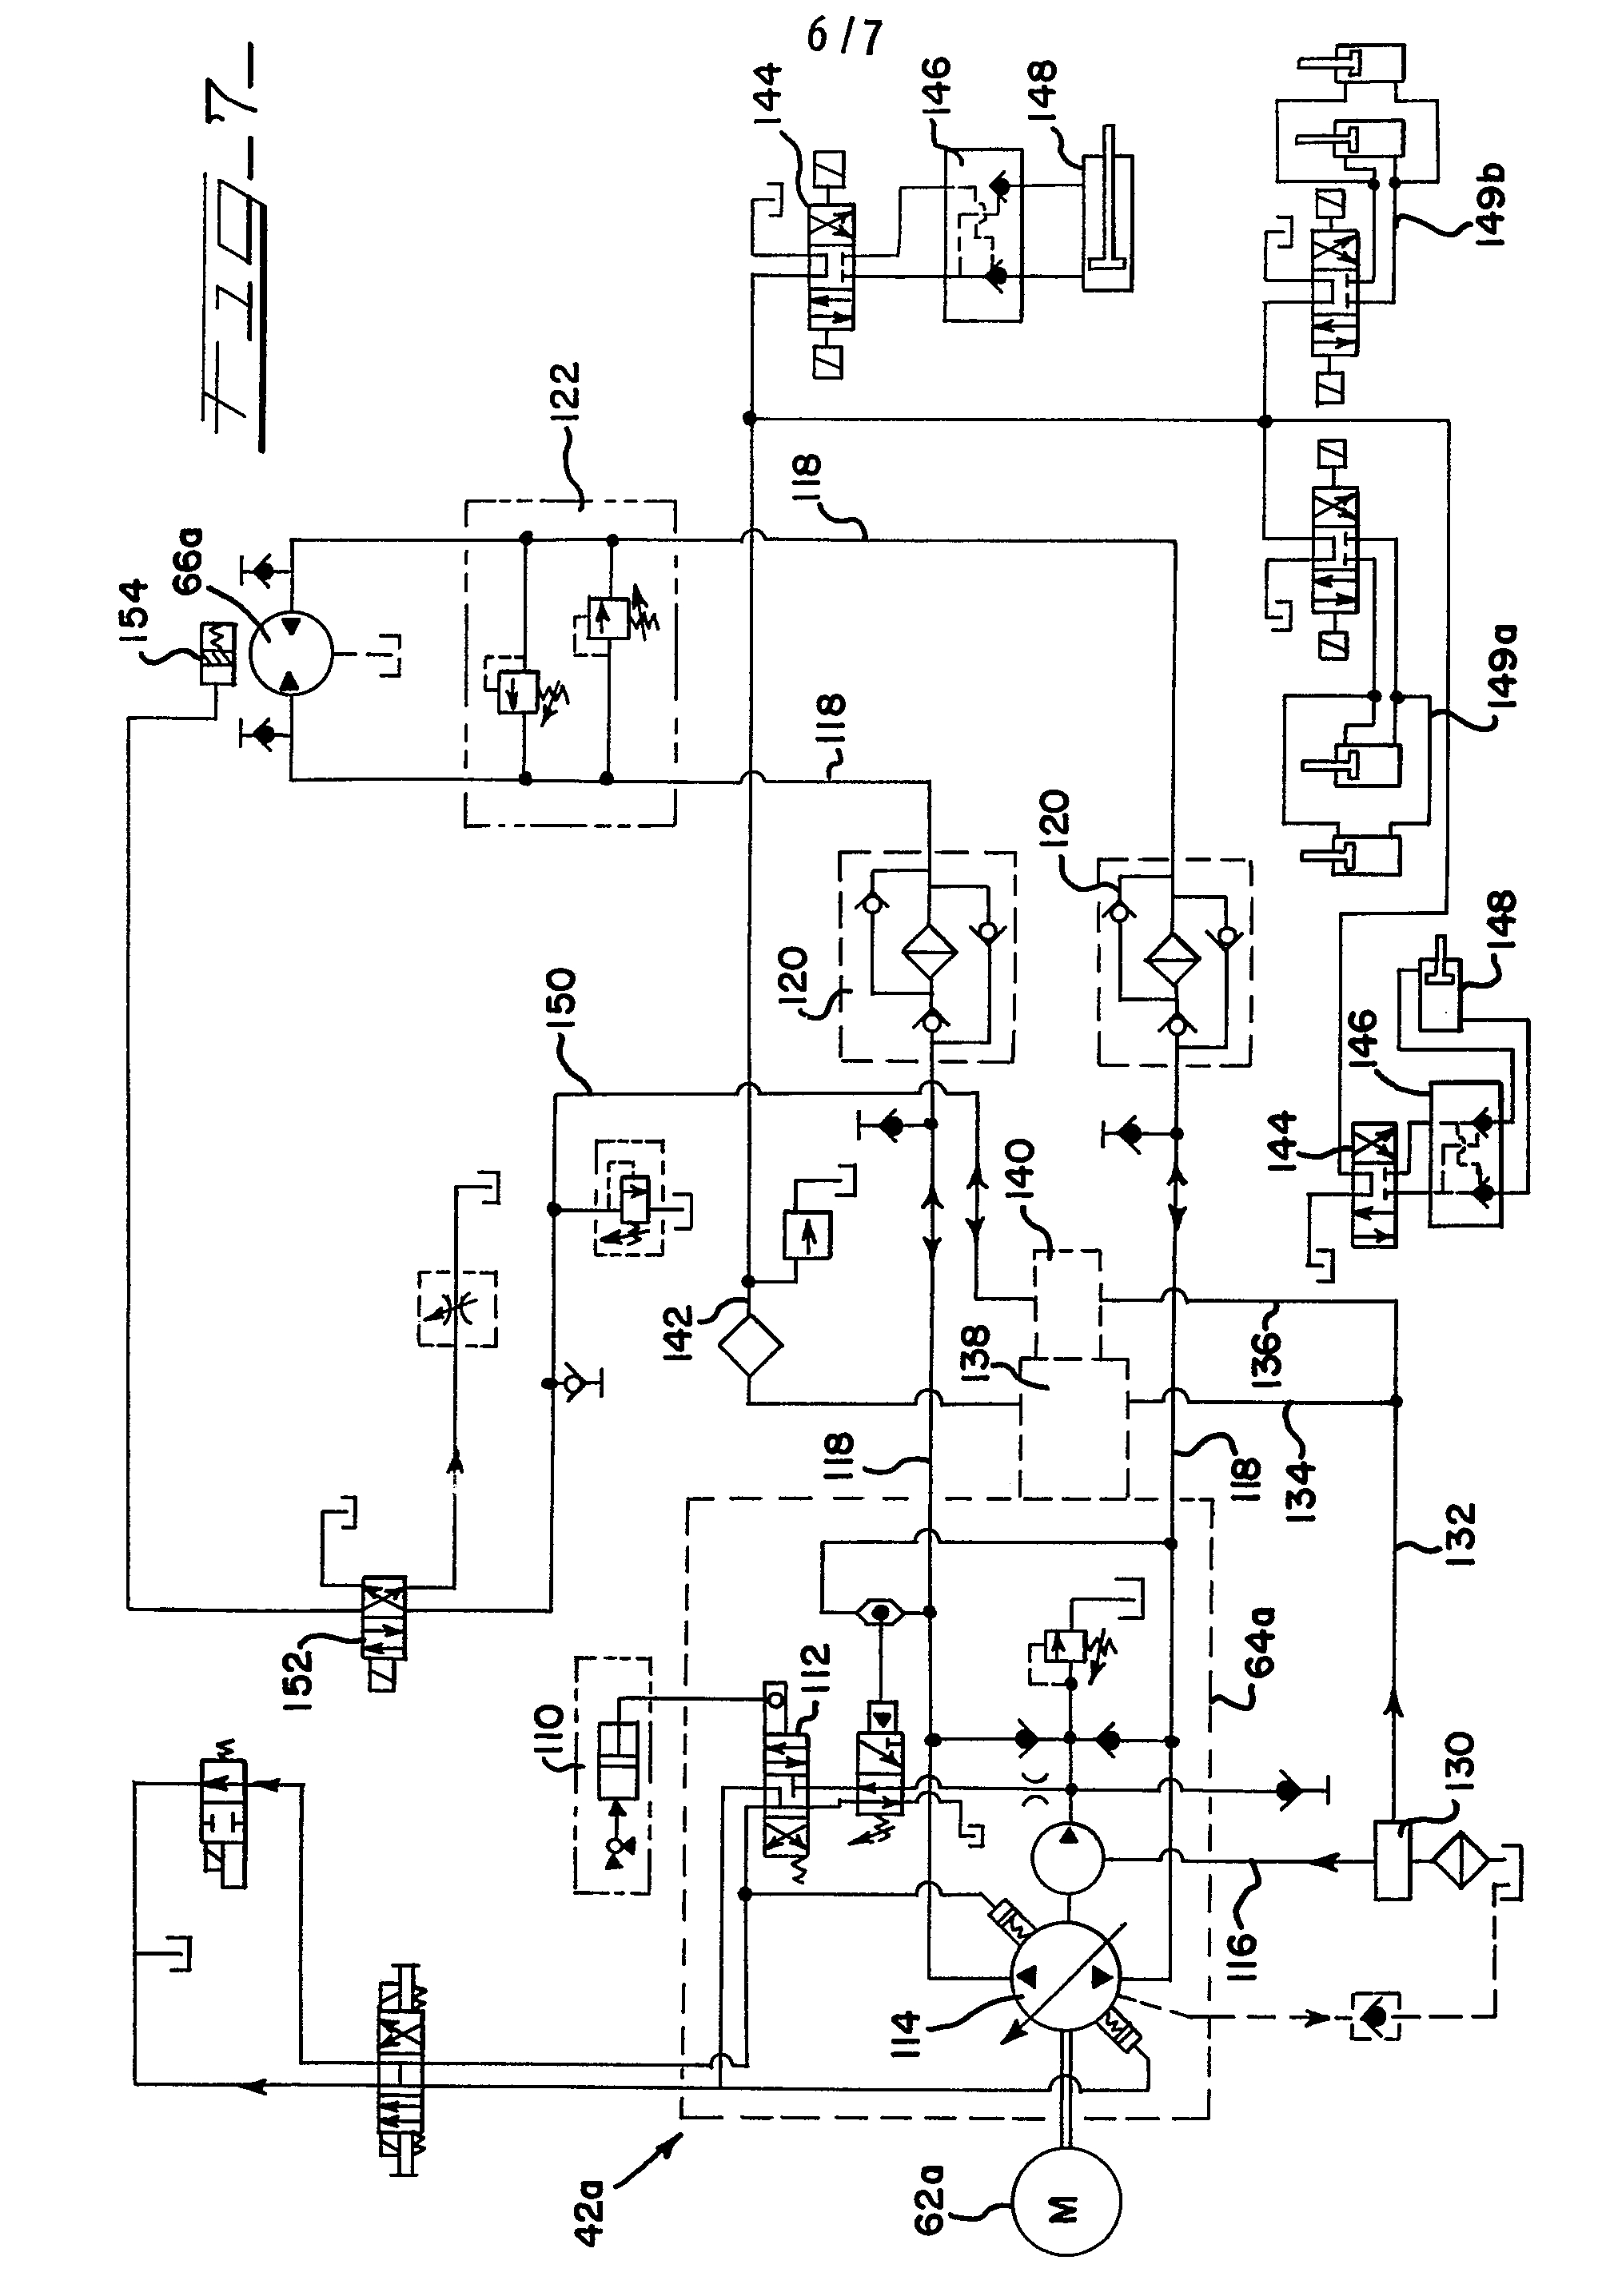 wiring diagram for whirlpool wrf989sdam00